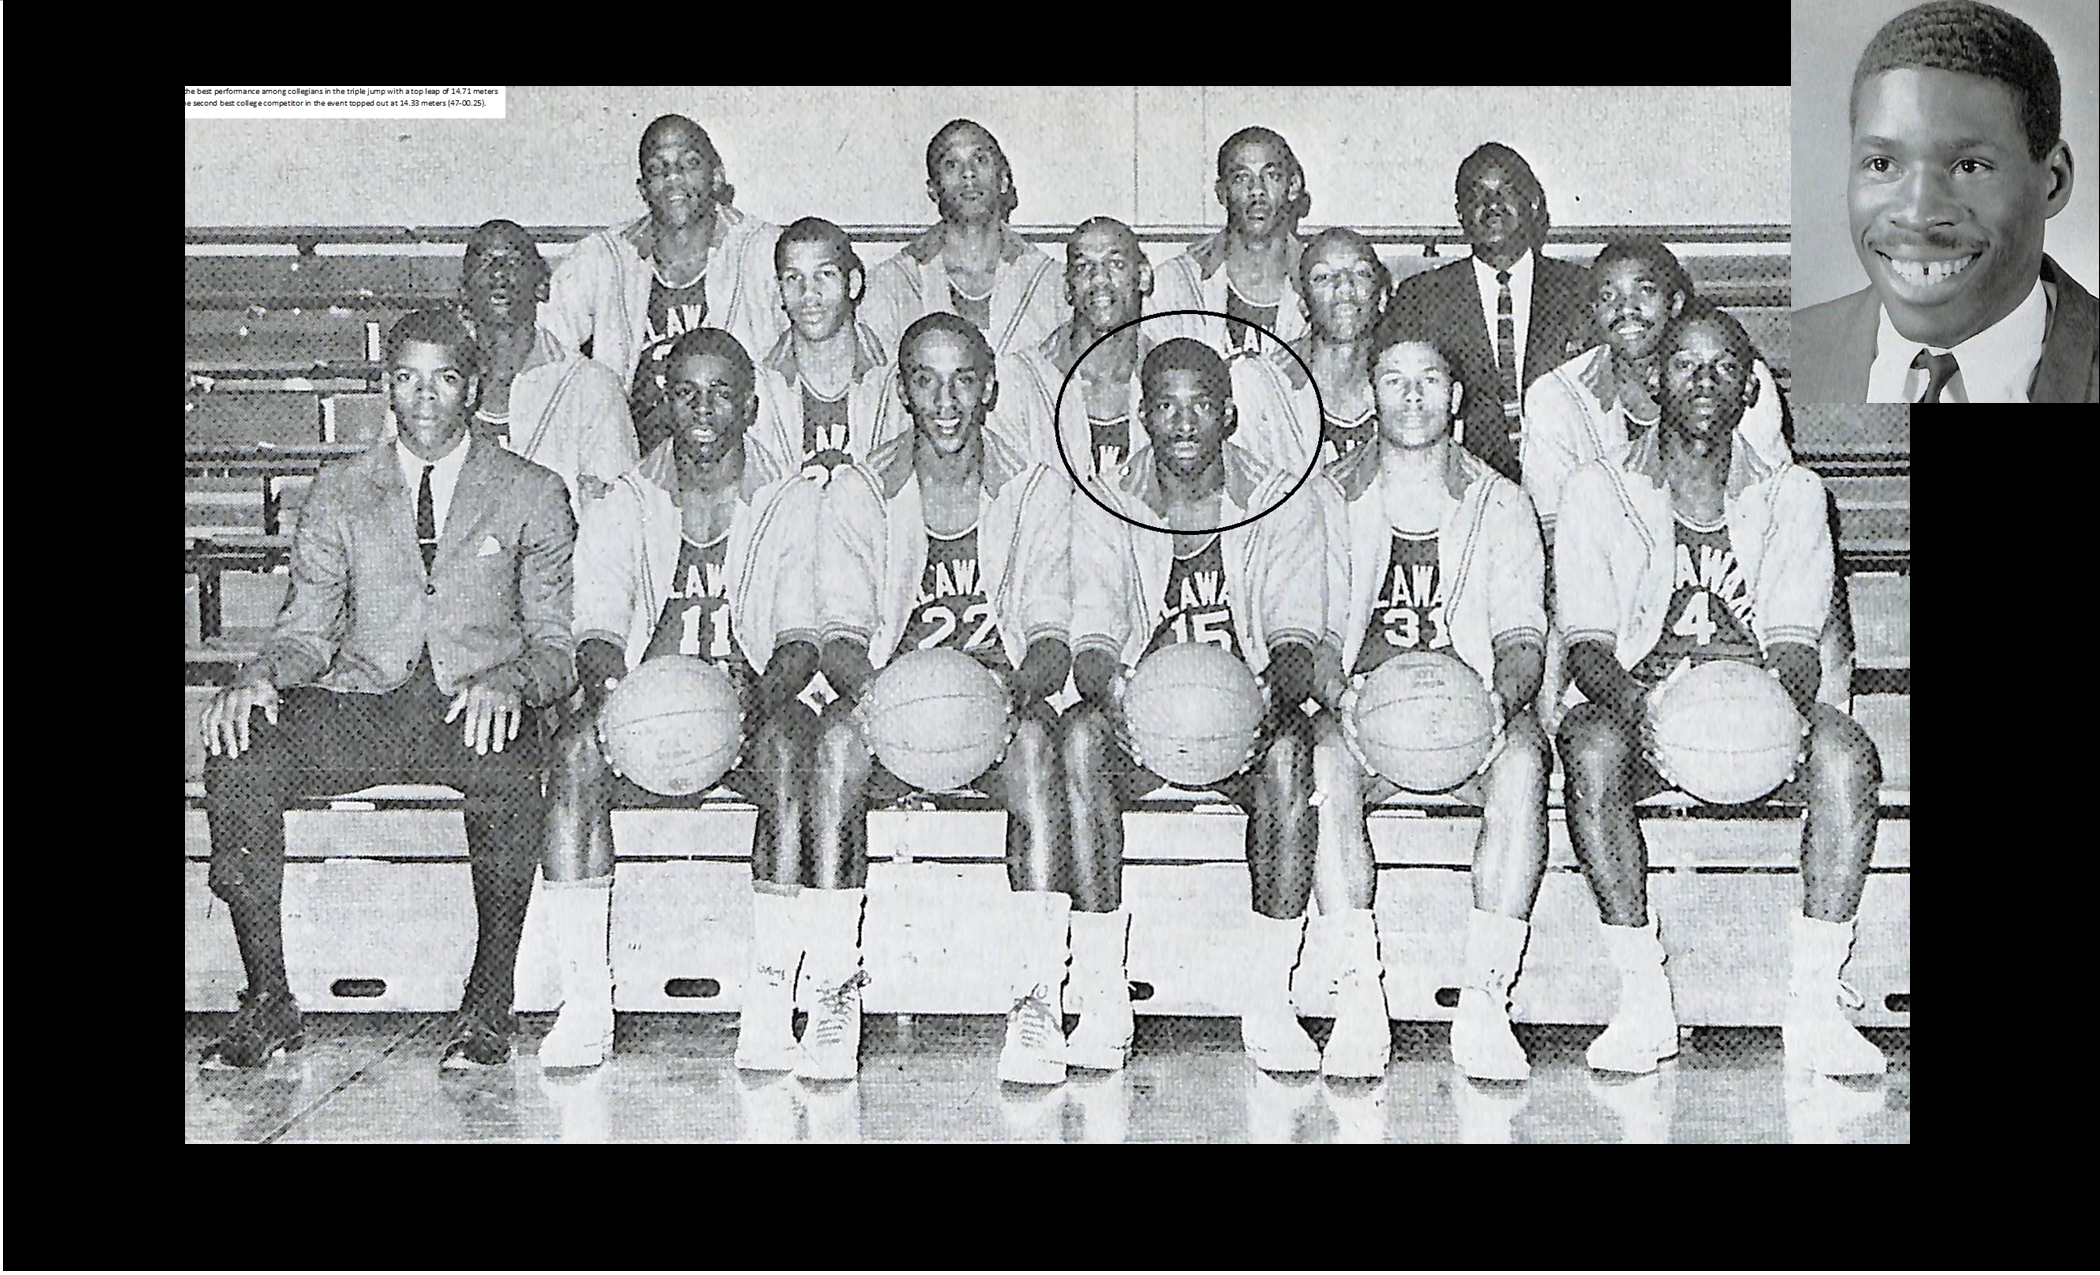 Maurice Pritchett (circled and in the upper right corner) with one of his 1960s teams.